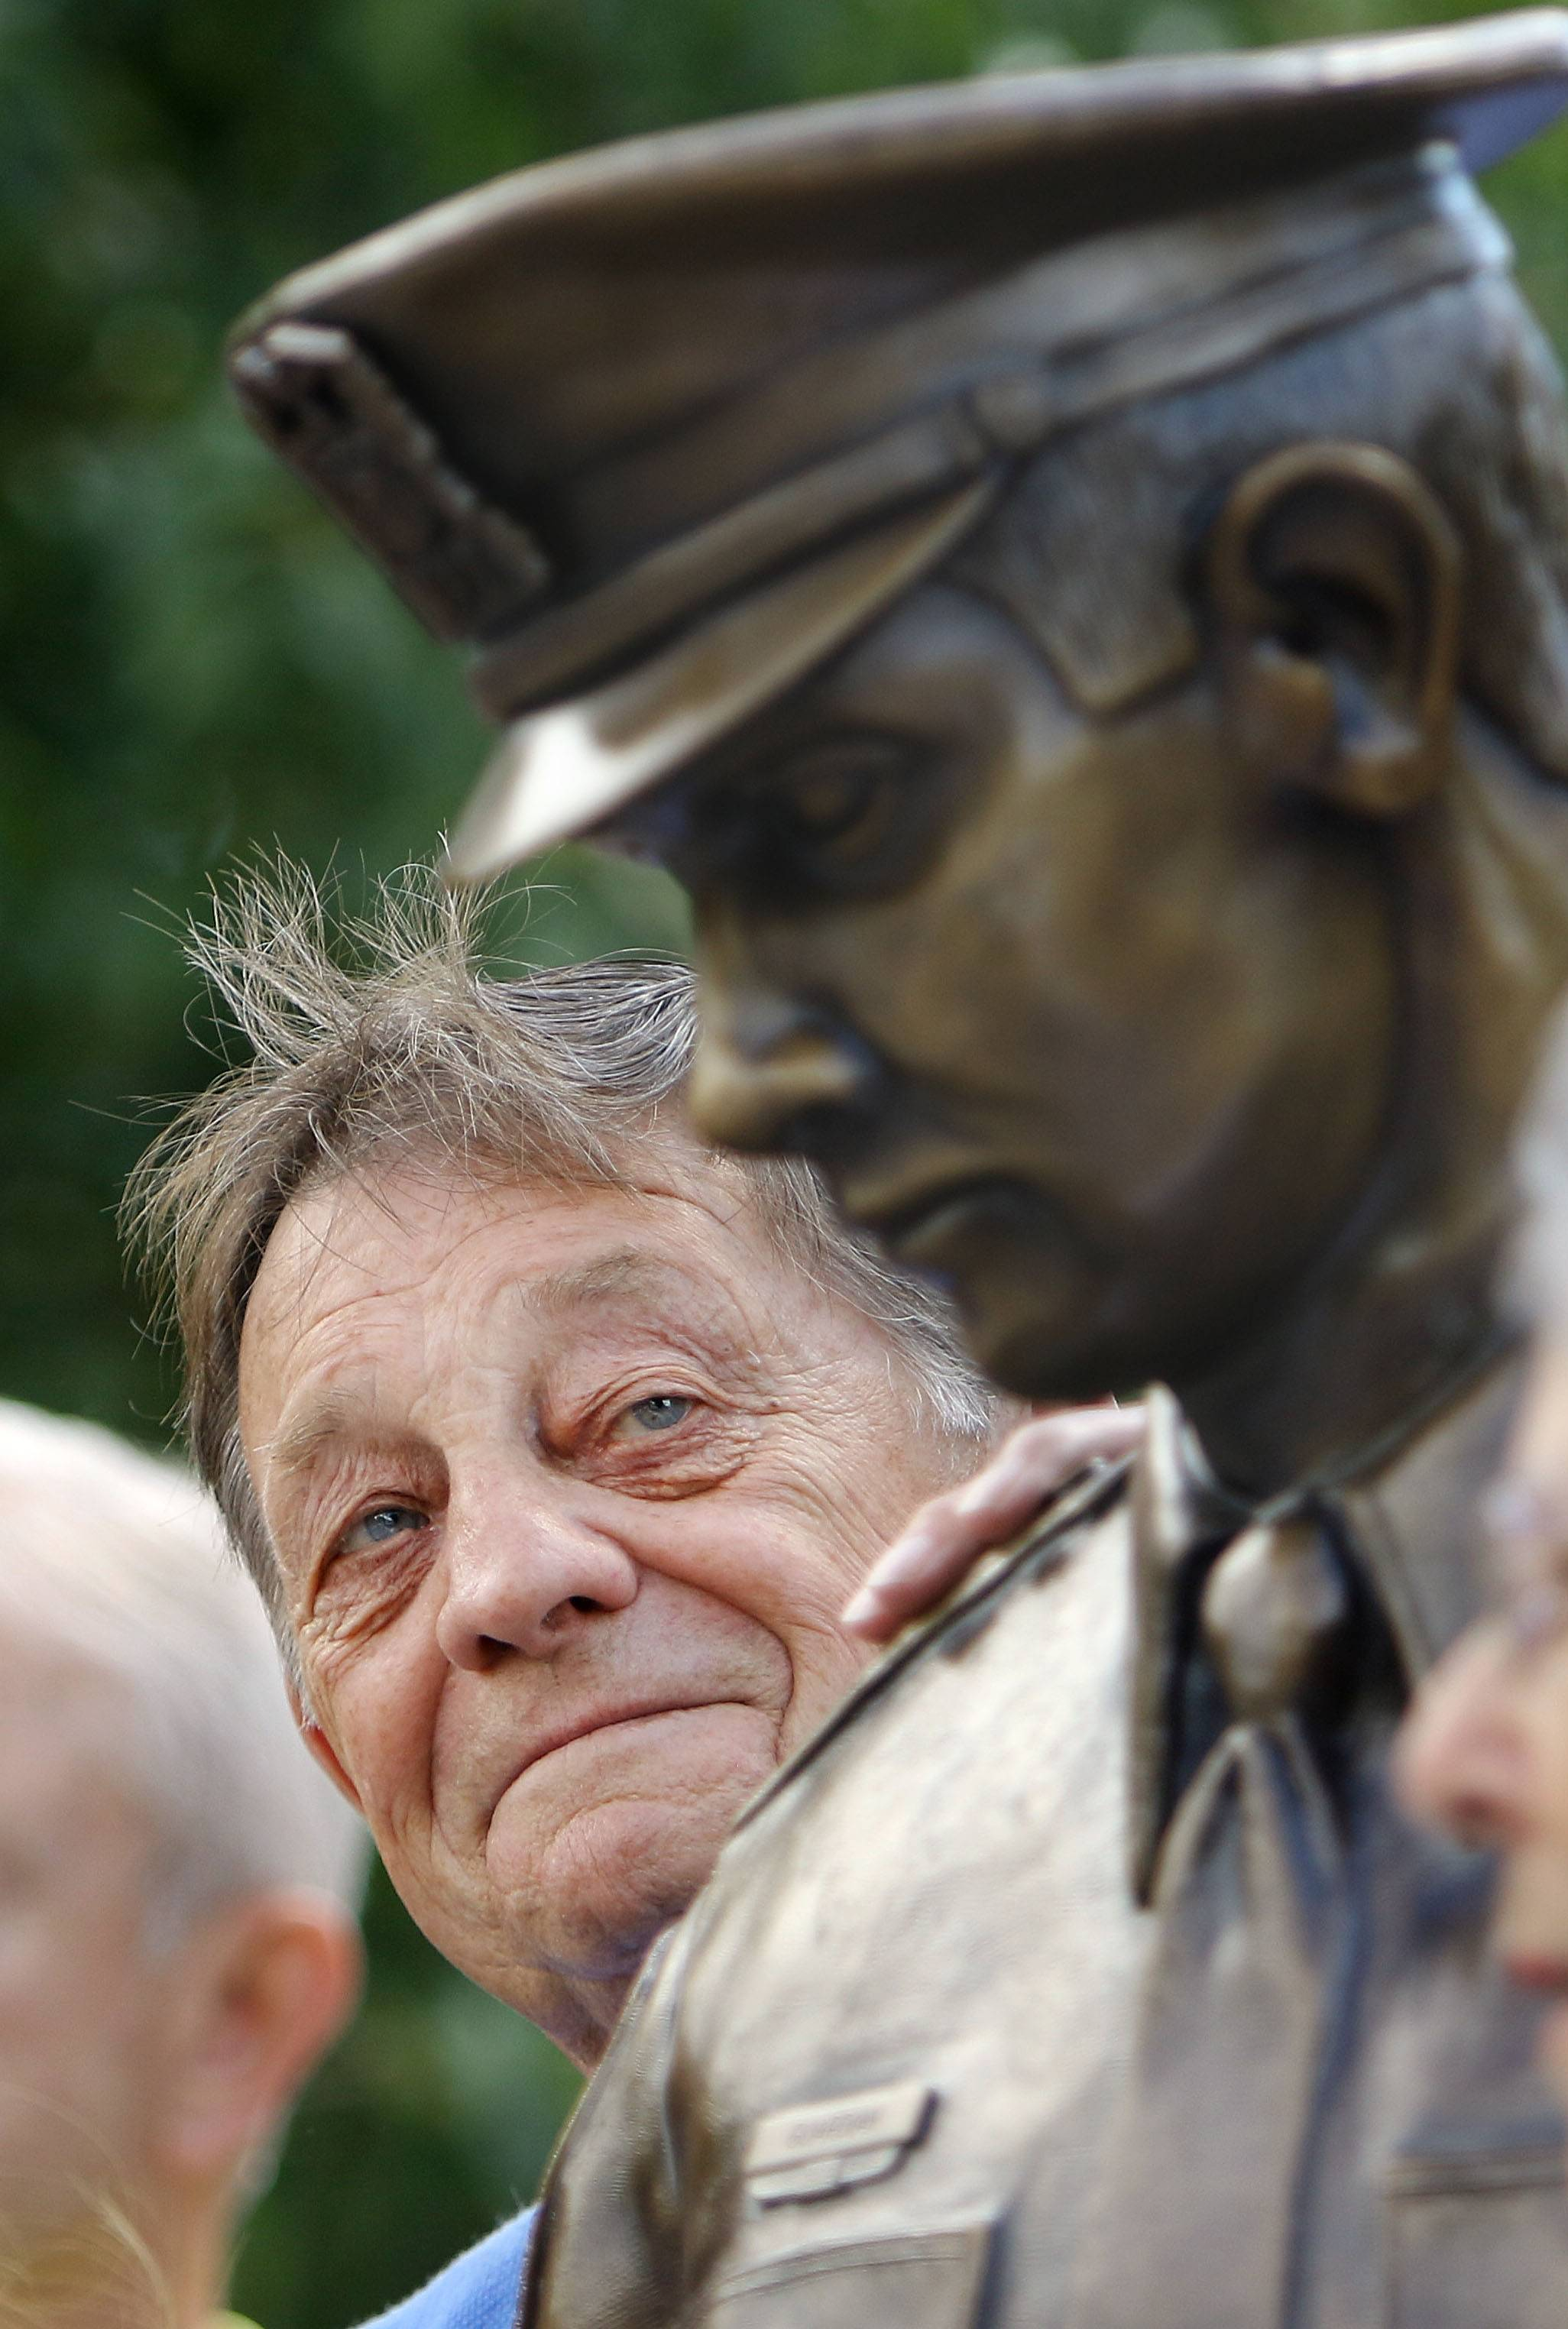 Mundelein proudly unveils statue paying homage to its police